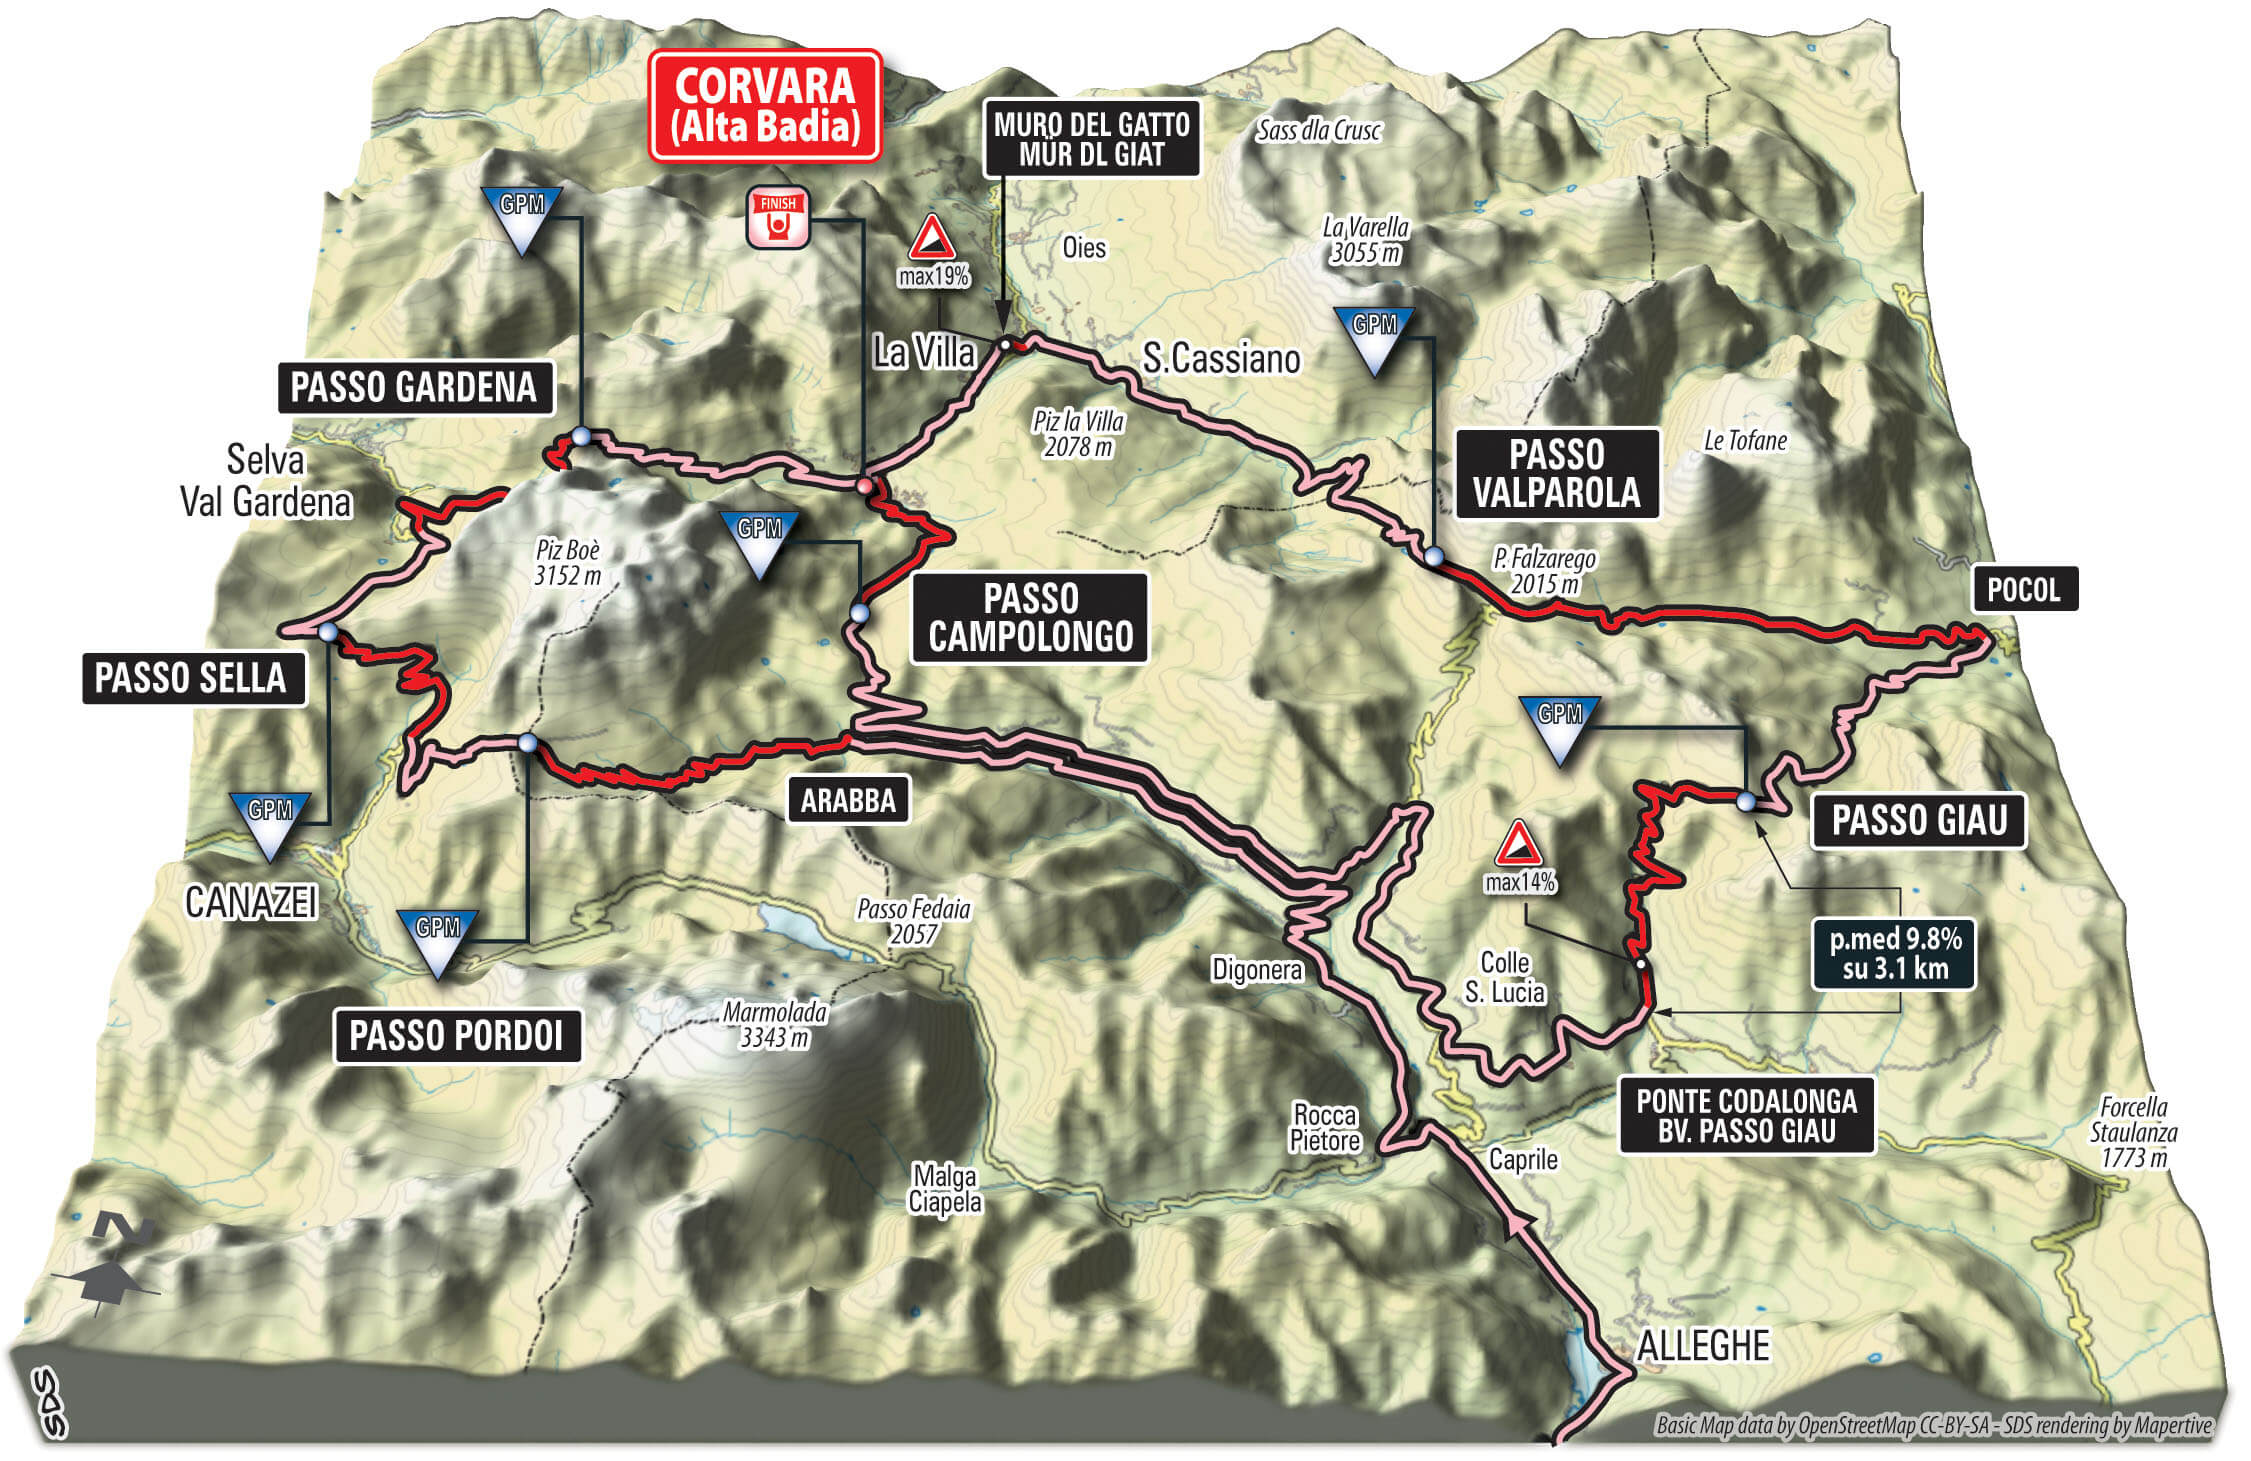 Cartina 3d Dolomiti.The Pink Caravan Will Cross The Roads That Have Made The Name And Fame Of Europe S Premier Gran Fondo Race